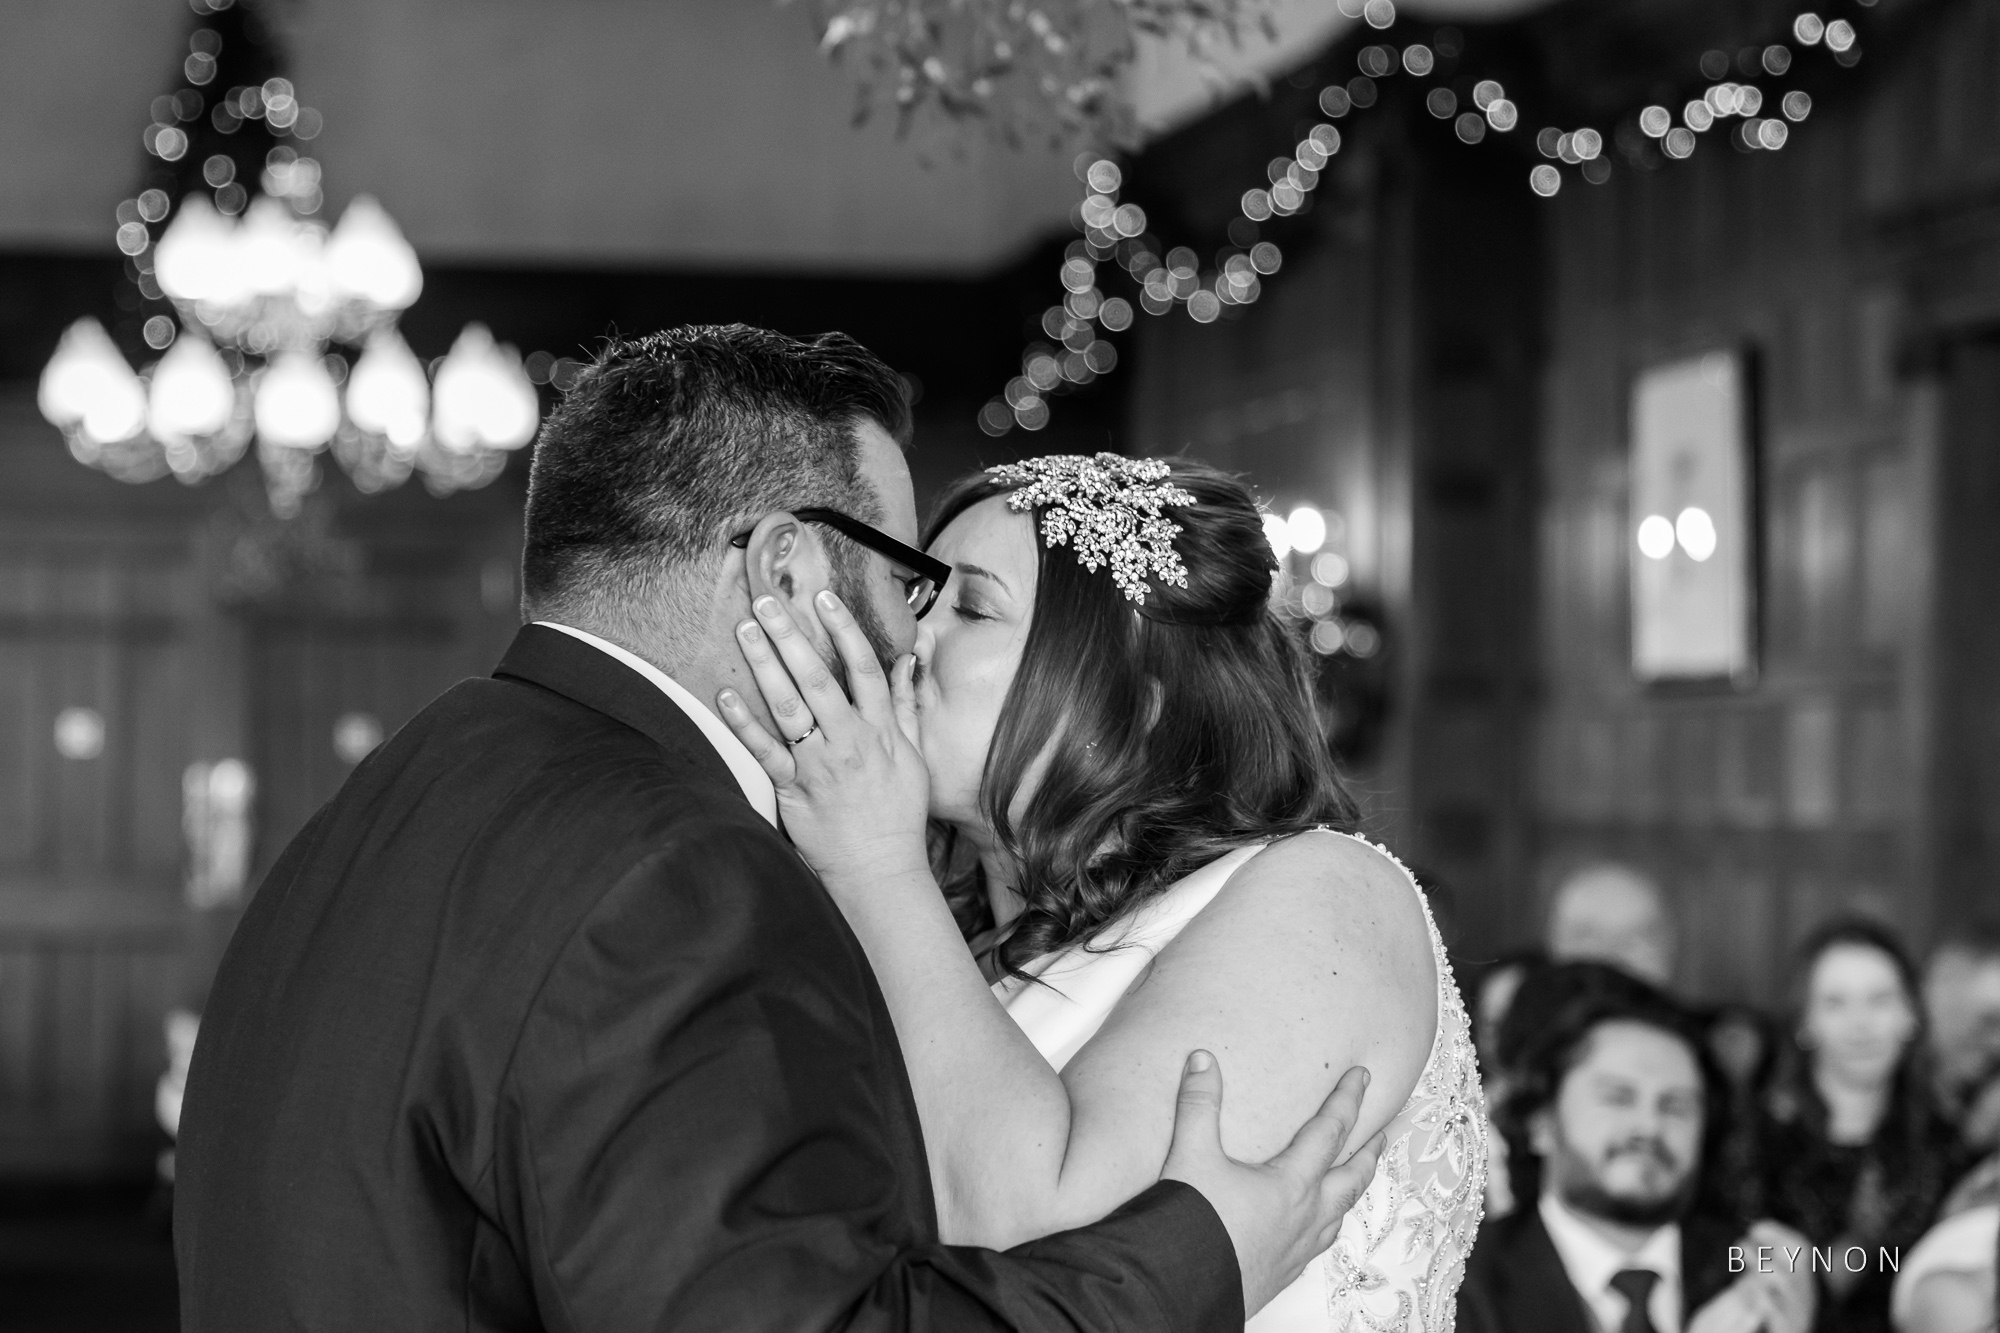 The newly weds have their first kiss